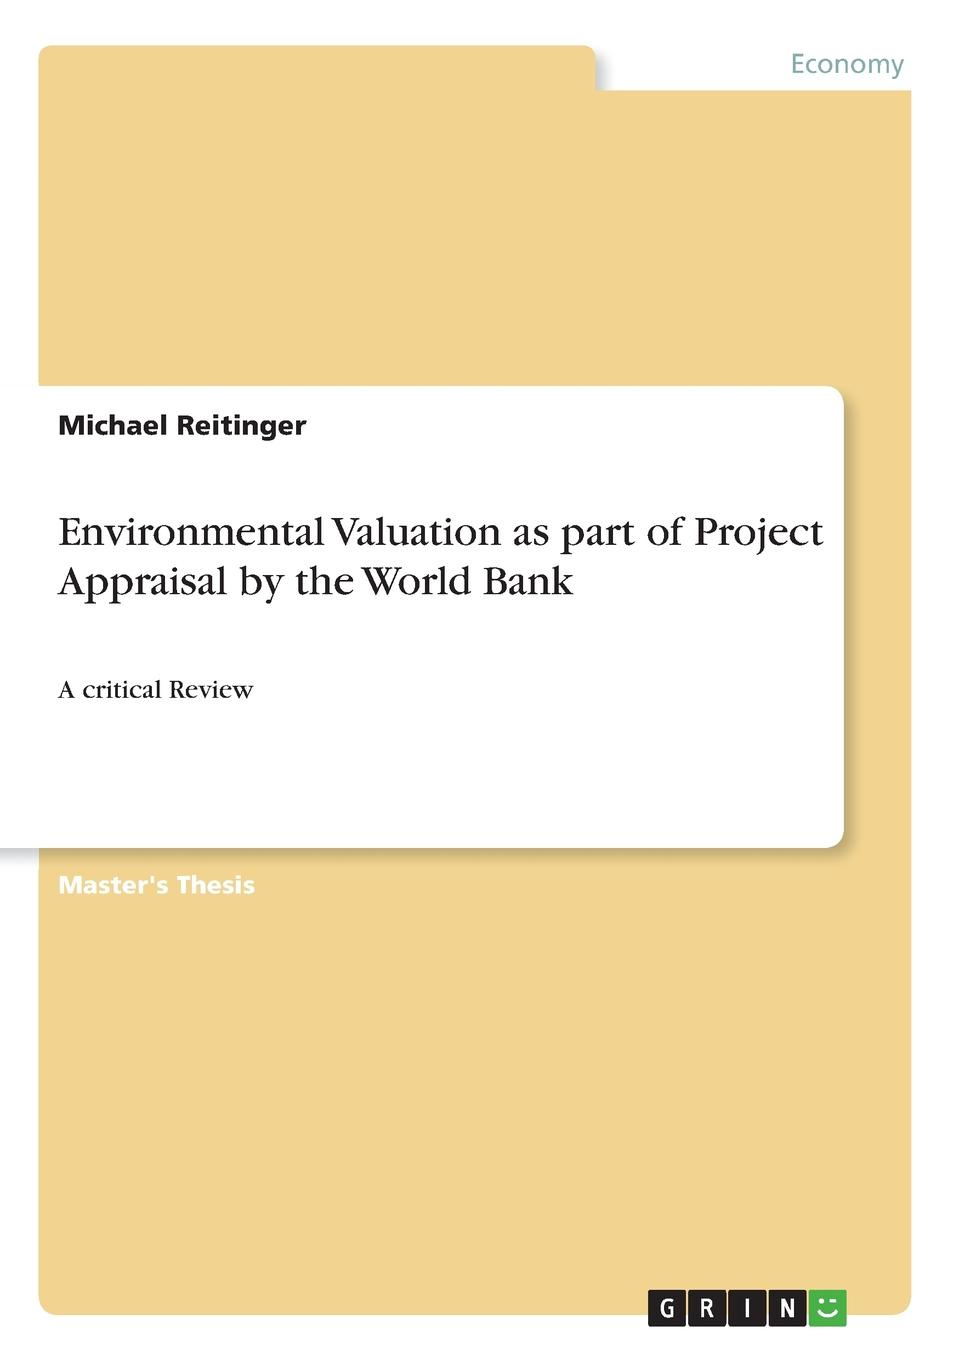 Michael Reitinger Environmental Valuation as part of Project Appraisal by the World Bank